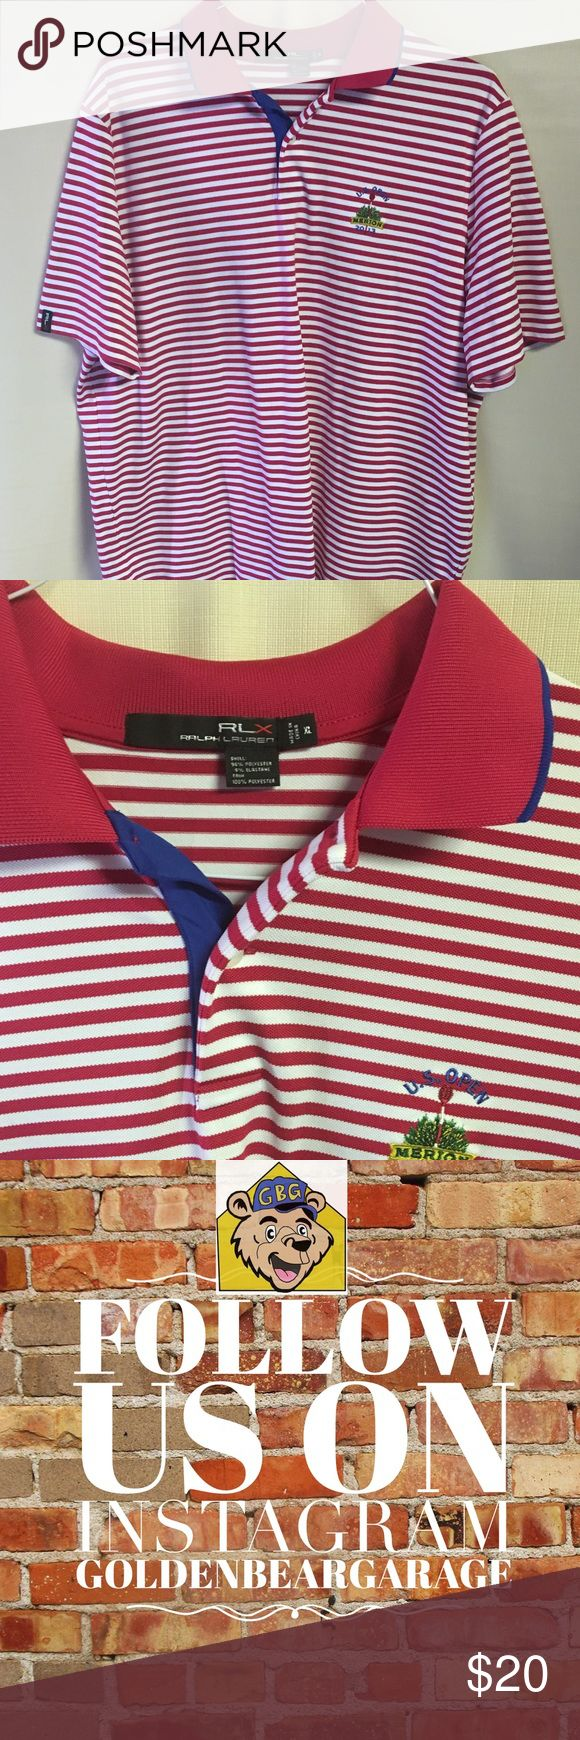 Ralph Lauren 2013 US Open Merion Striped PoloShirt Gently Worn Ralph Lauren Men's XL Pinstriped 2013 US Open Merion Golf Polo Shirt. Shirt is in great condition with no flaws. Classic throwback for golfer. Polo by Ralph Lauren Shirts Polos